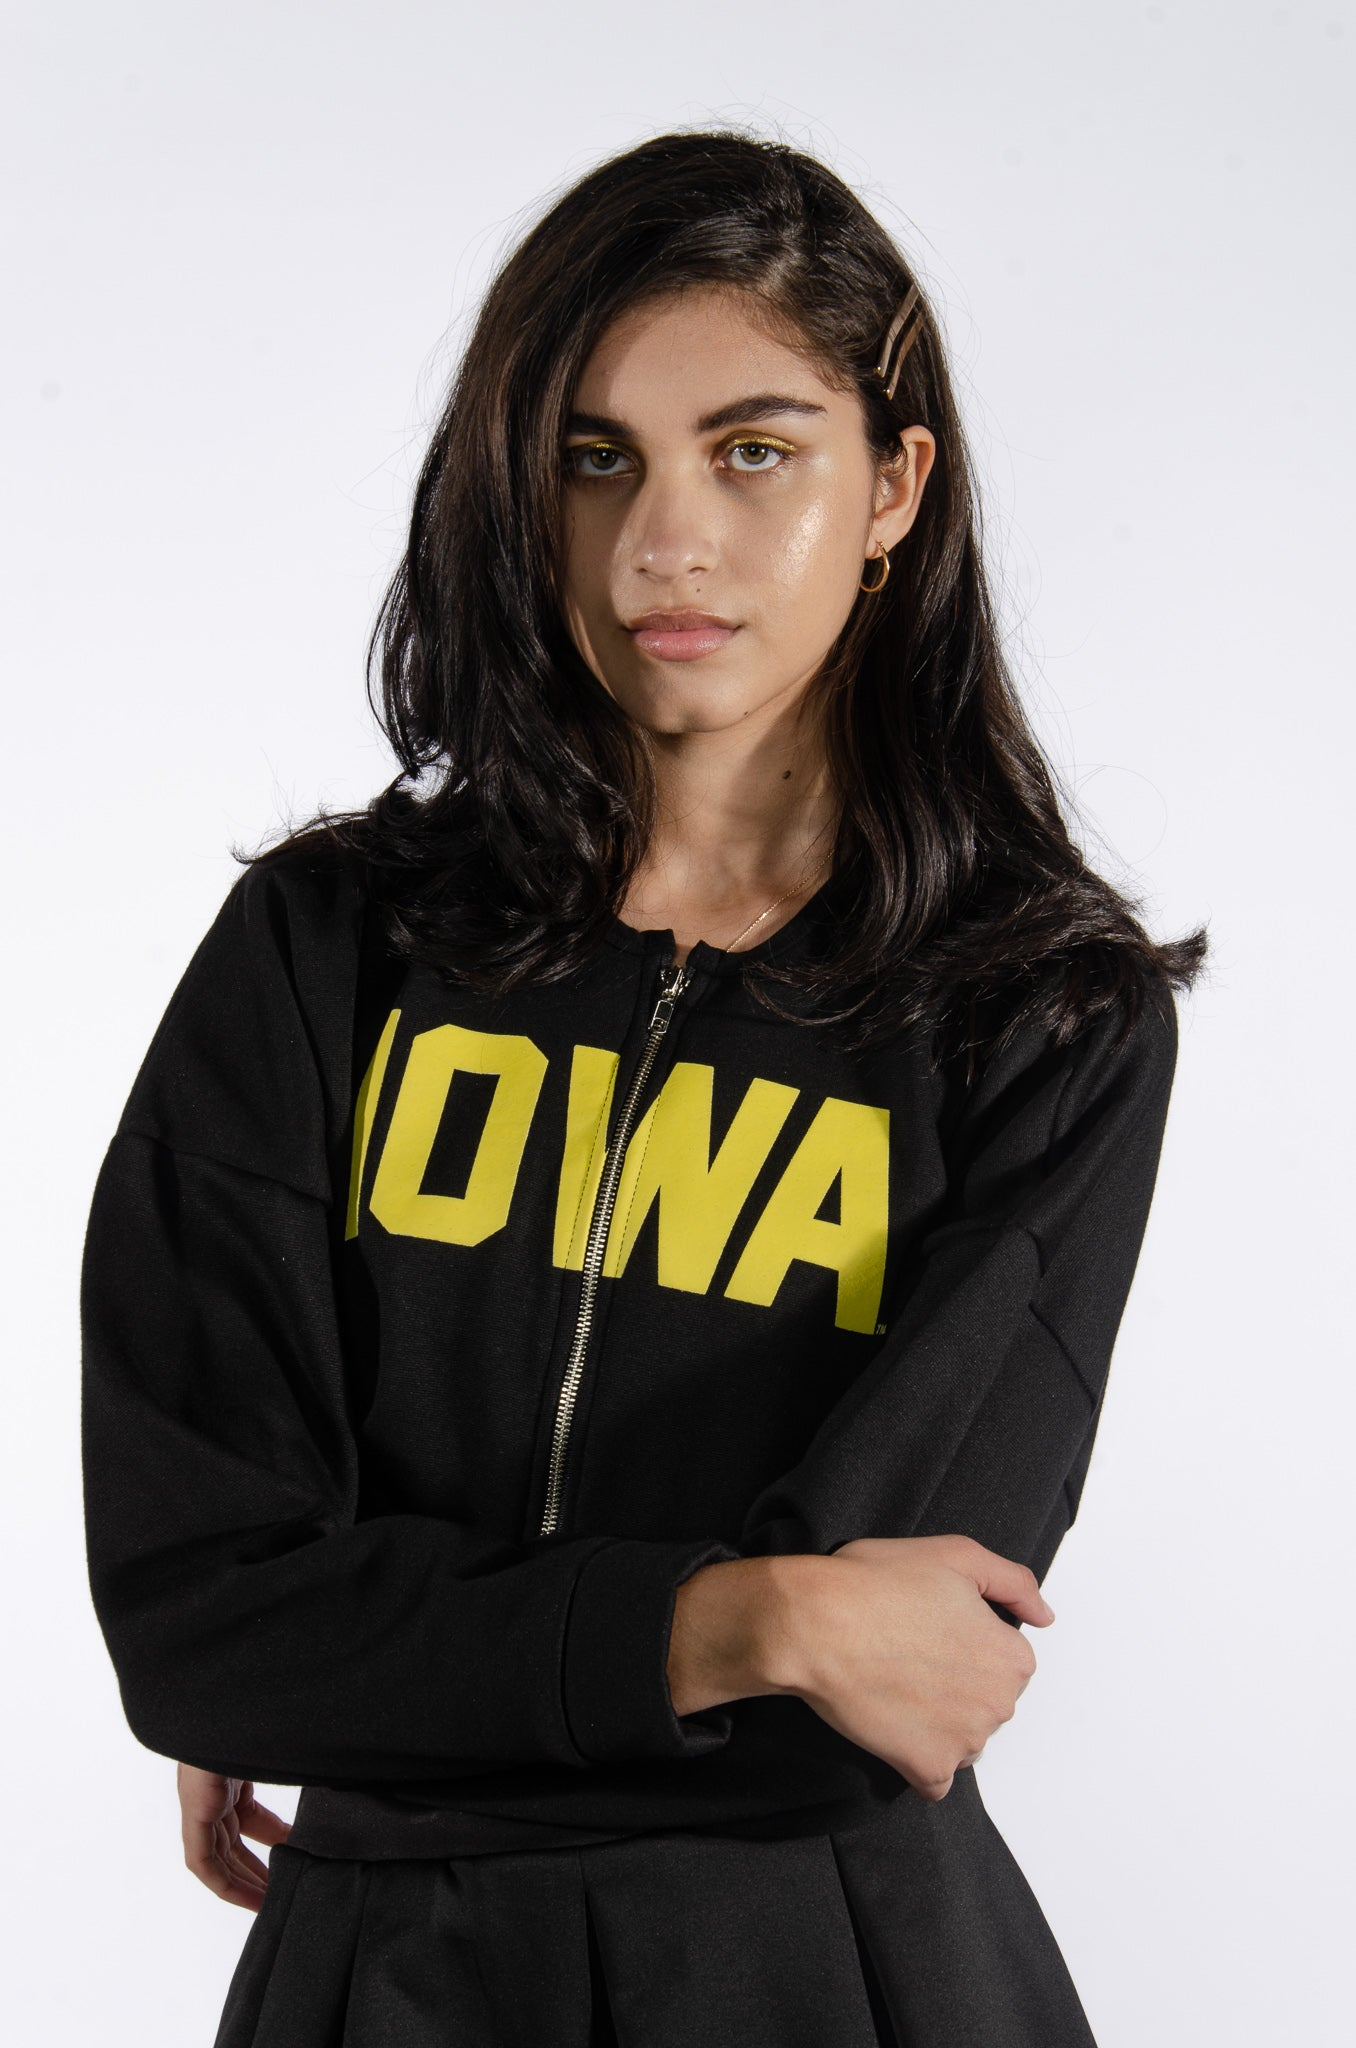 Iowa Cropped Zip-Up - Hype and Vice